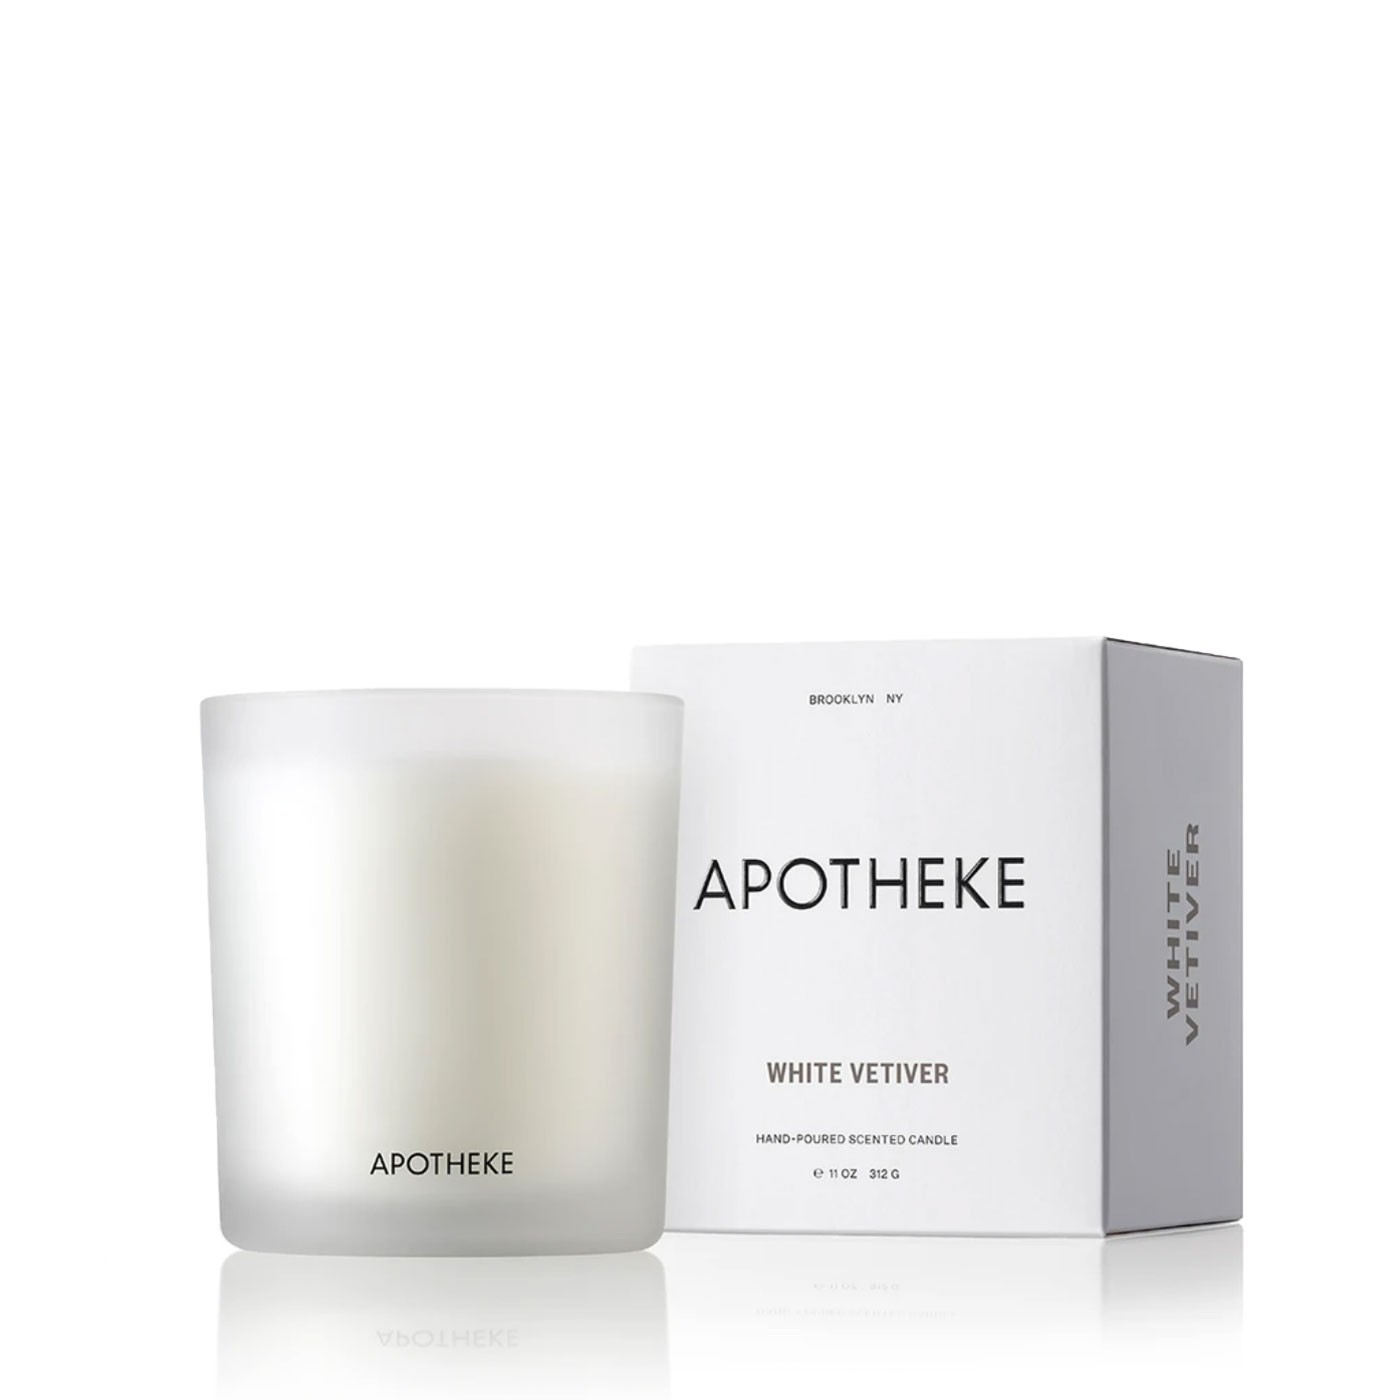 White Vetiver Scented Candle 11 oz